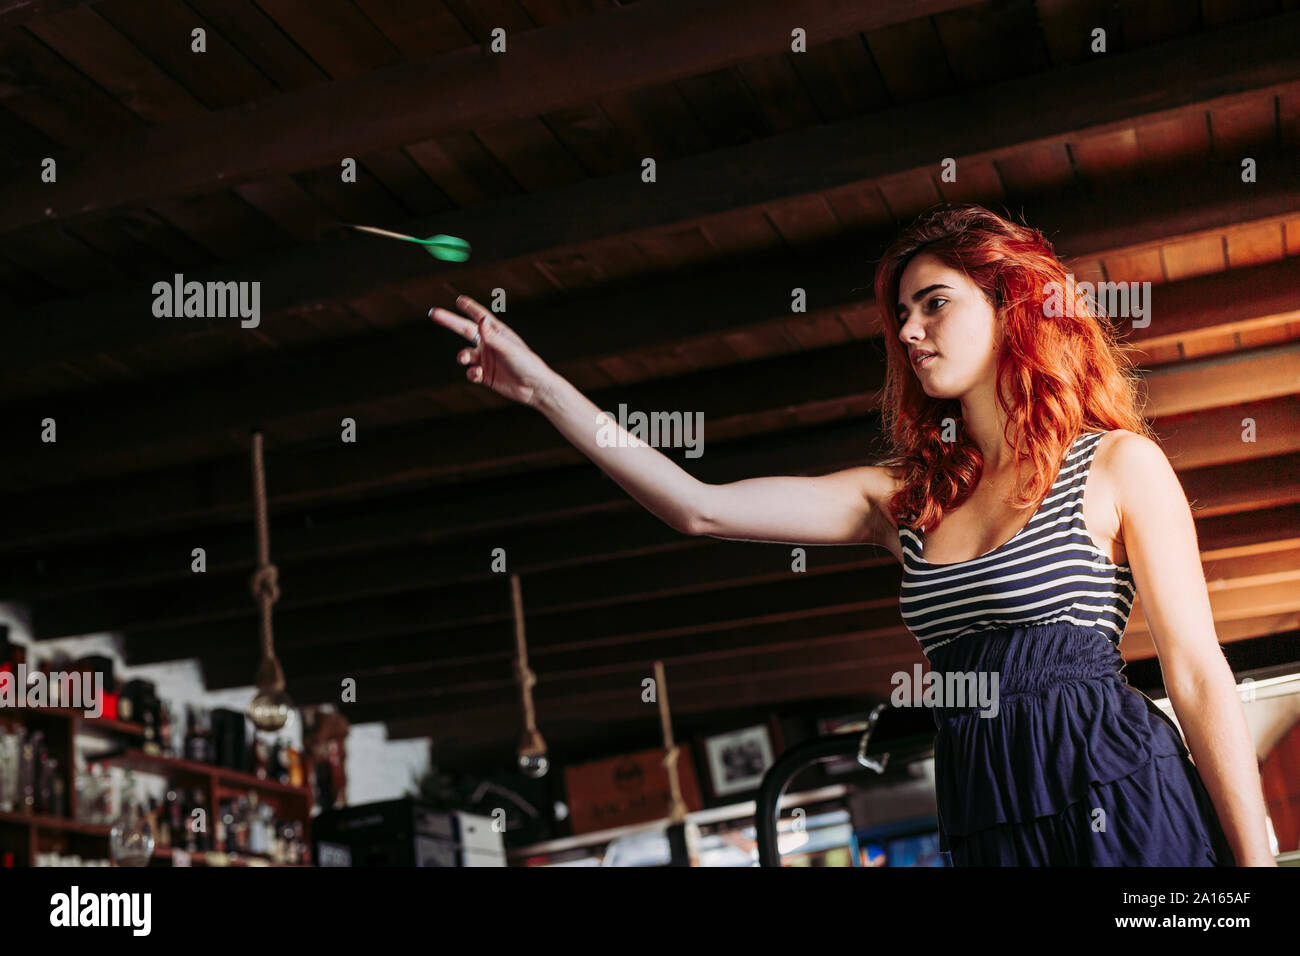 Young woman playing darts in a sports bar Stock Photo